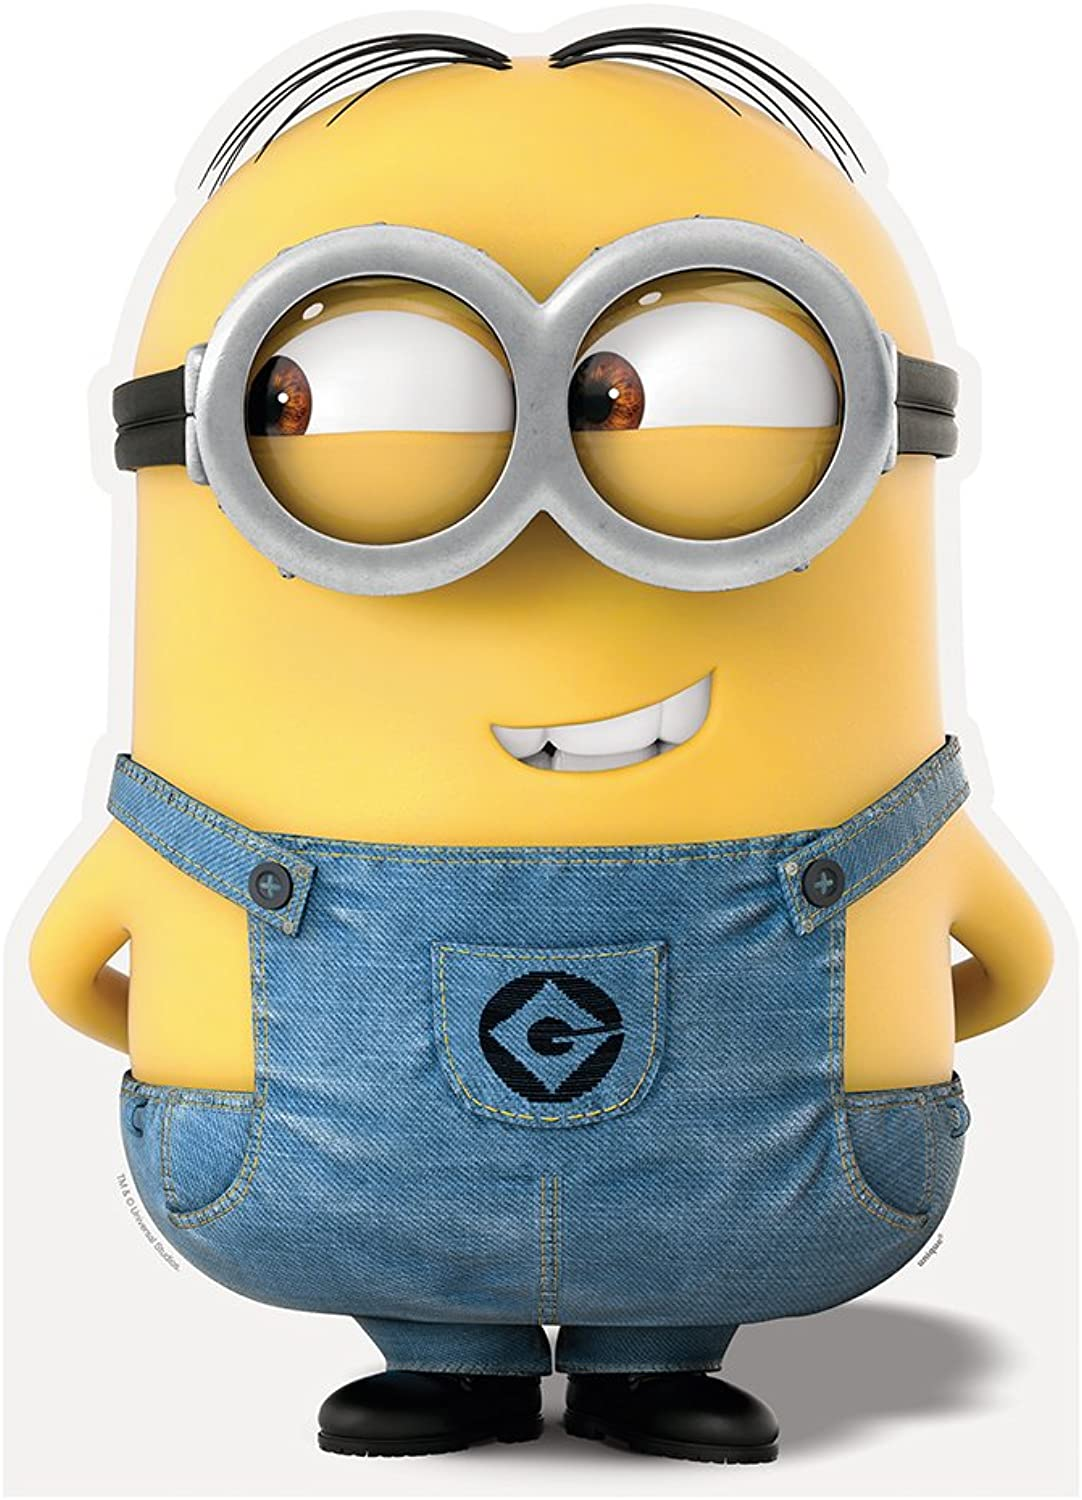 31  Large Cardboard Cut-Out Despicable Me Minion Decoration, Dave